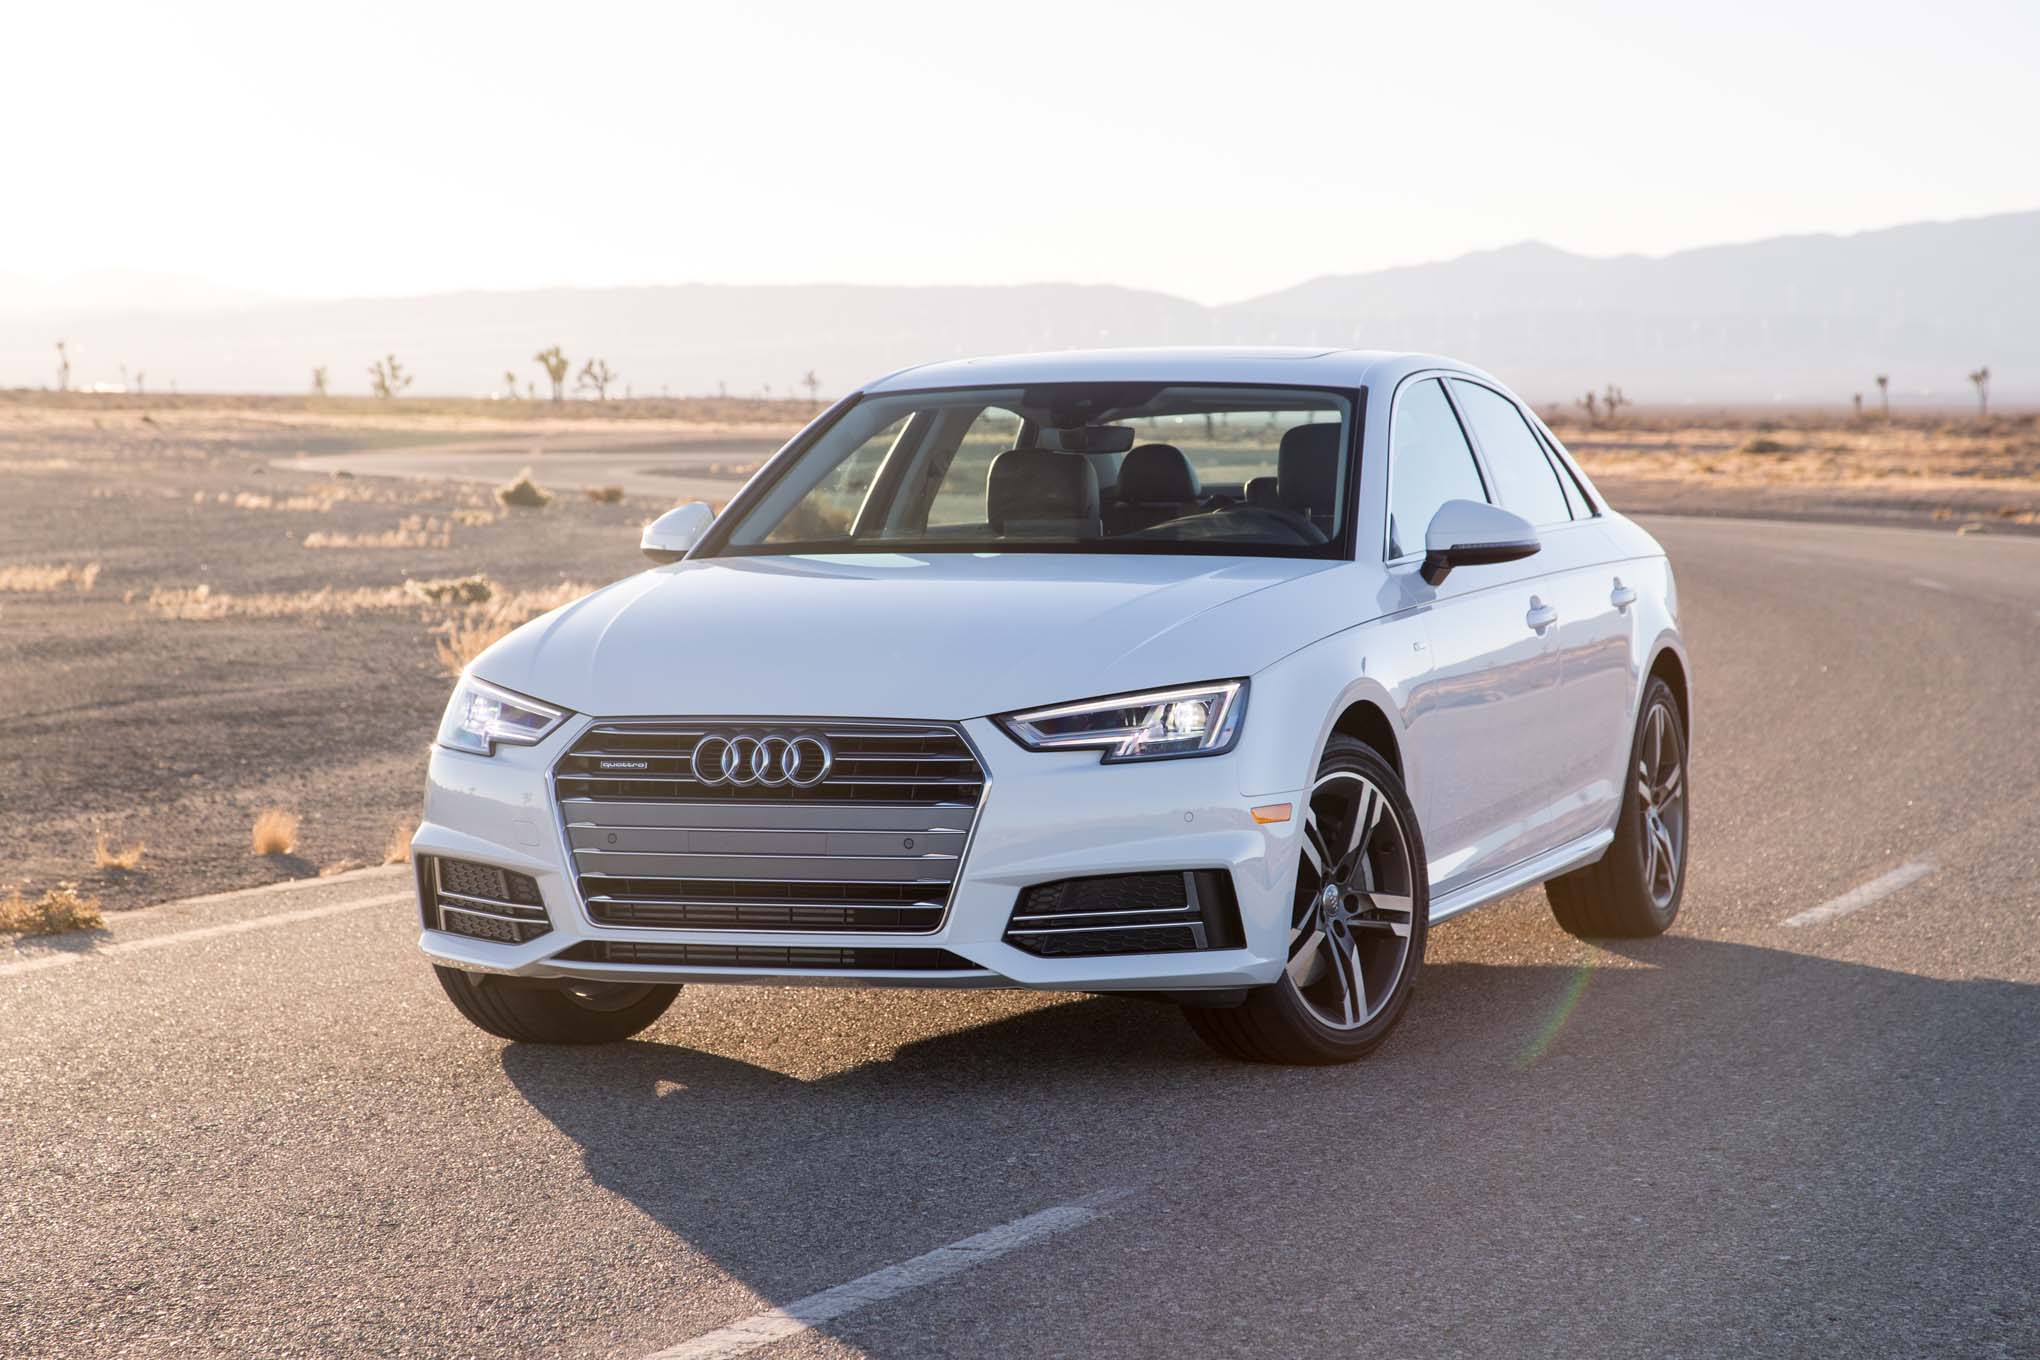 2017 Audi A4 Quattro front three quarter